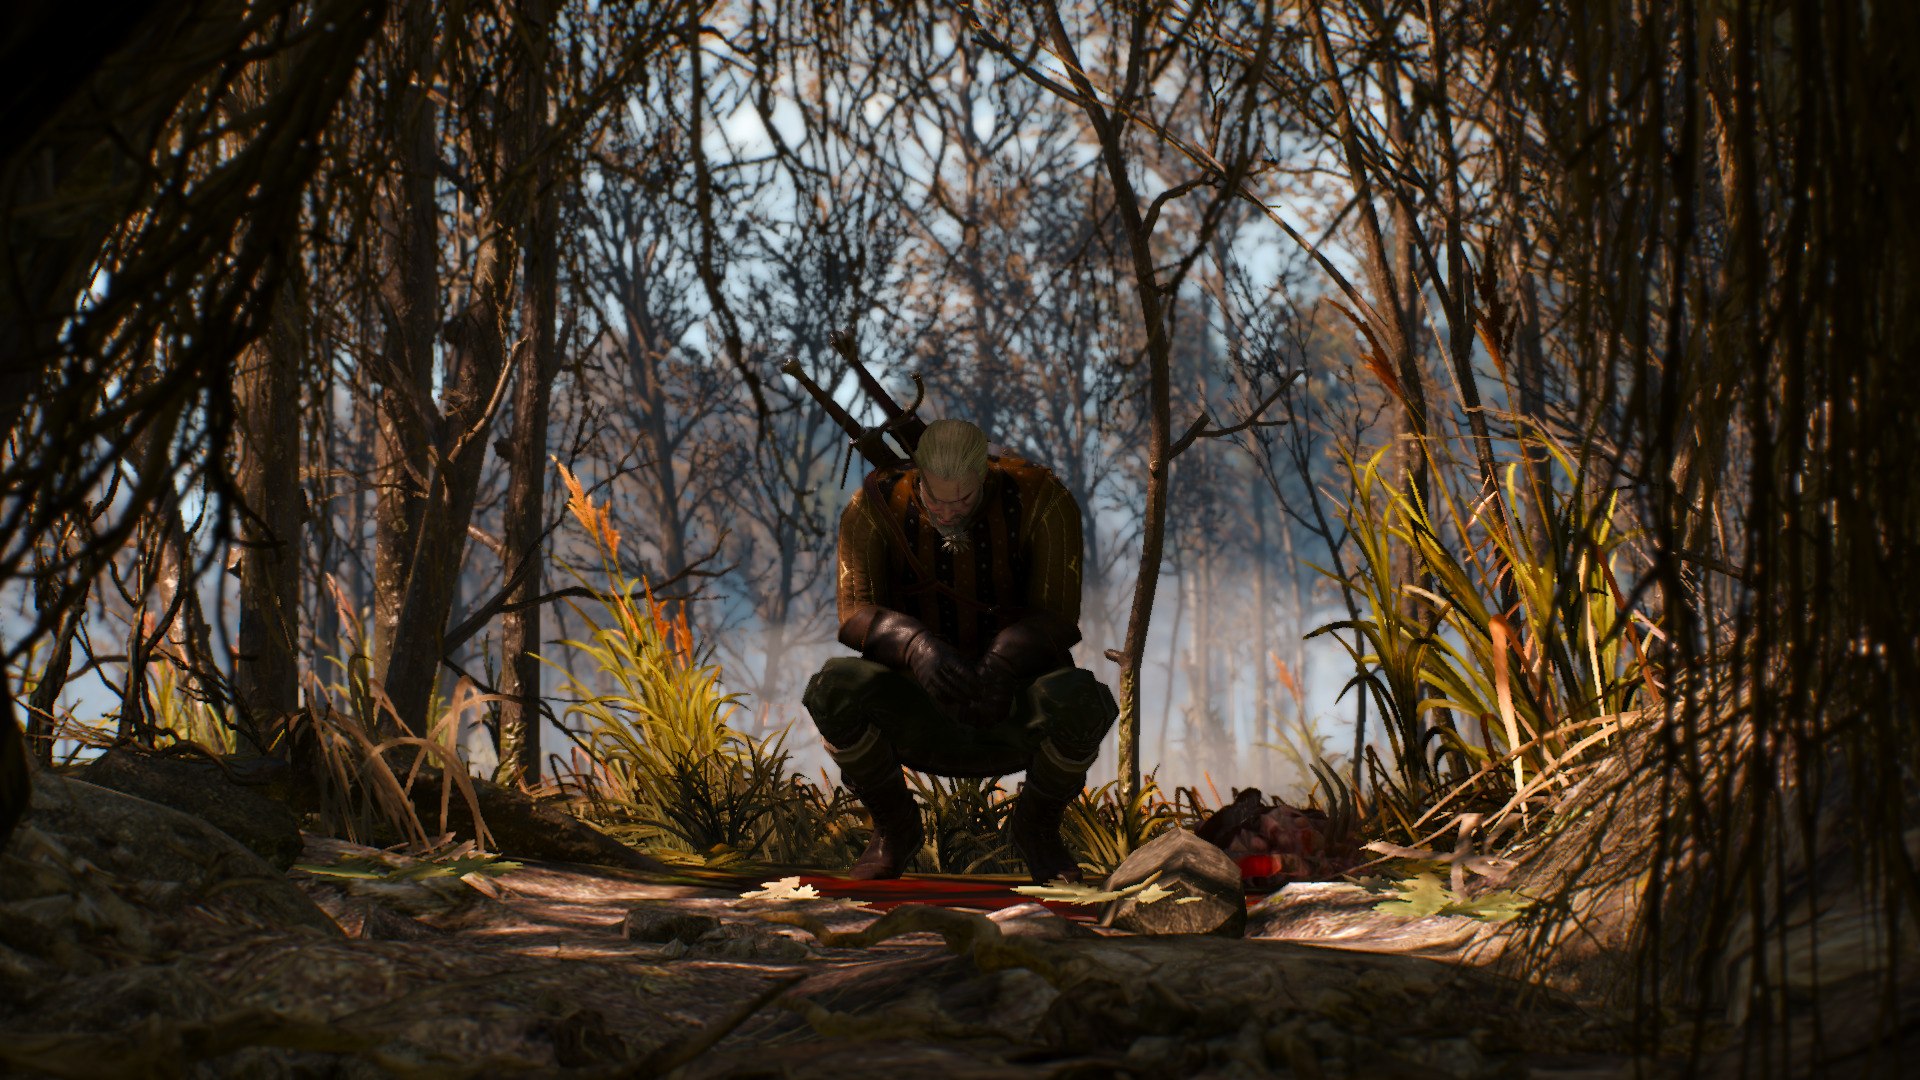 The Witcher 3, As Told Through Beautiful Screenshots